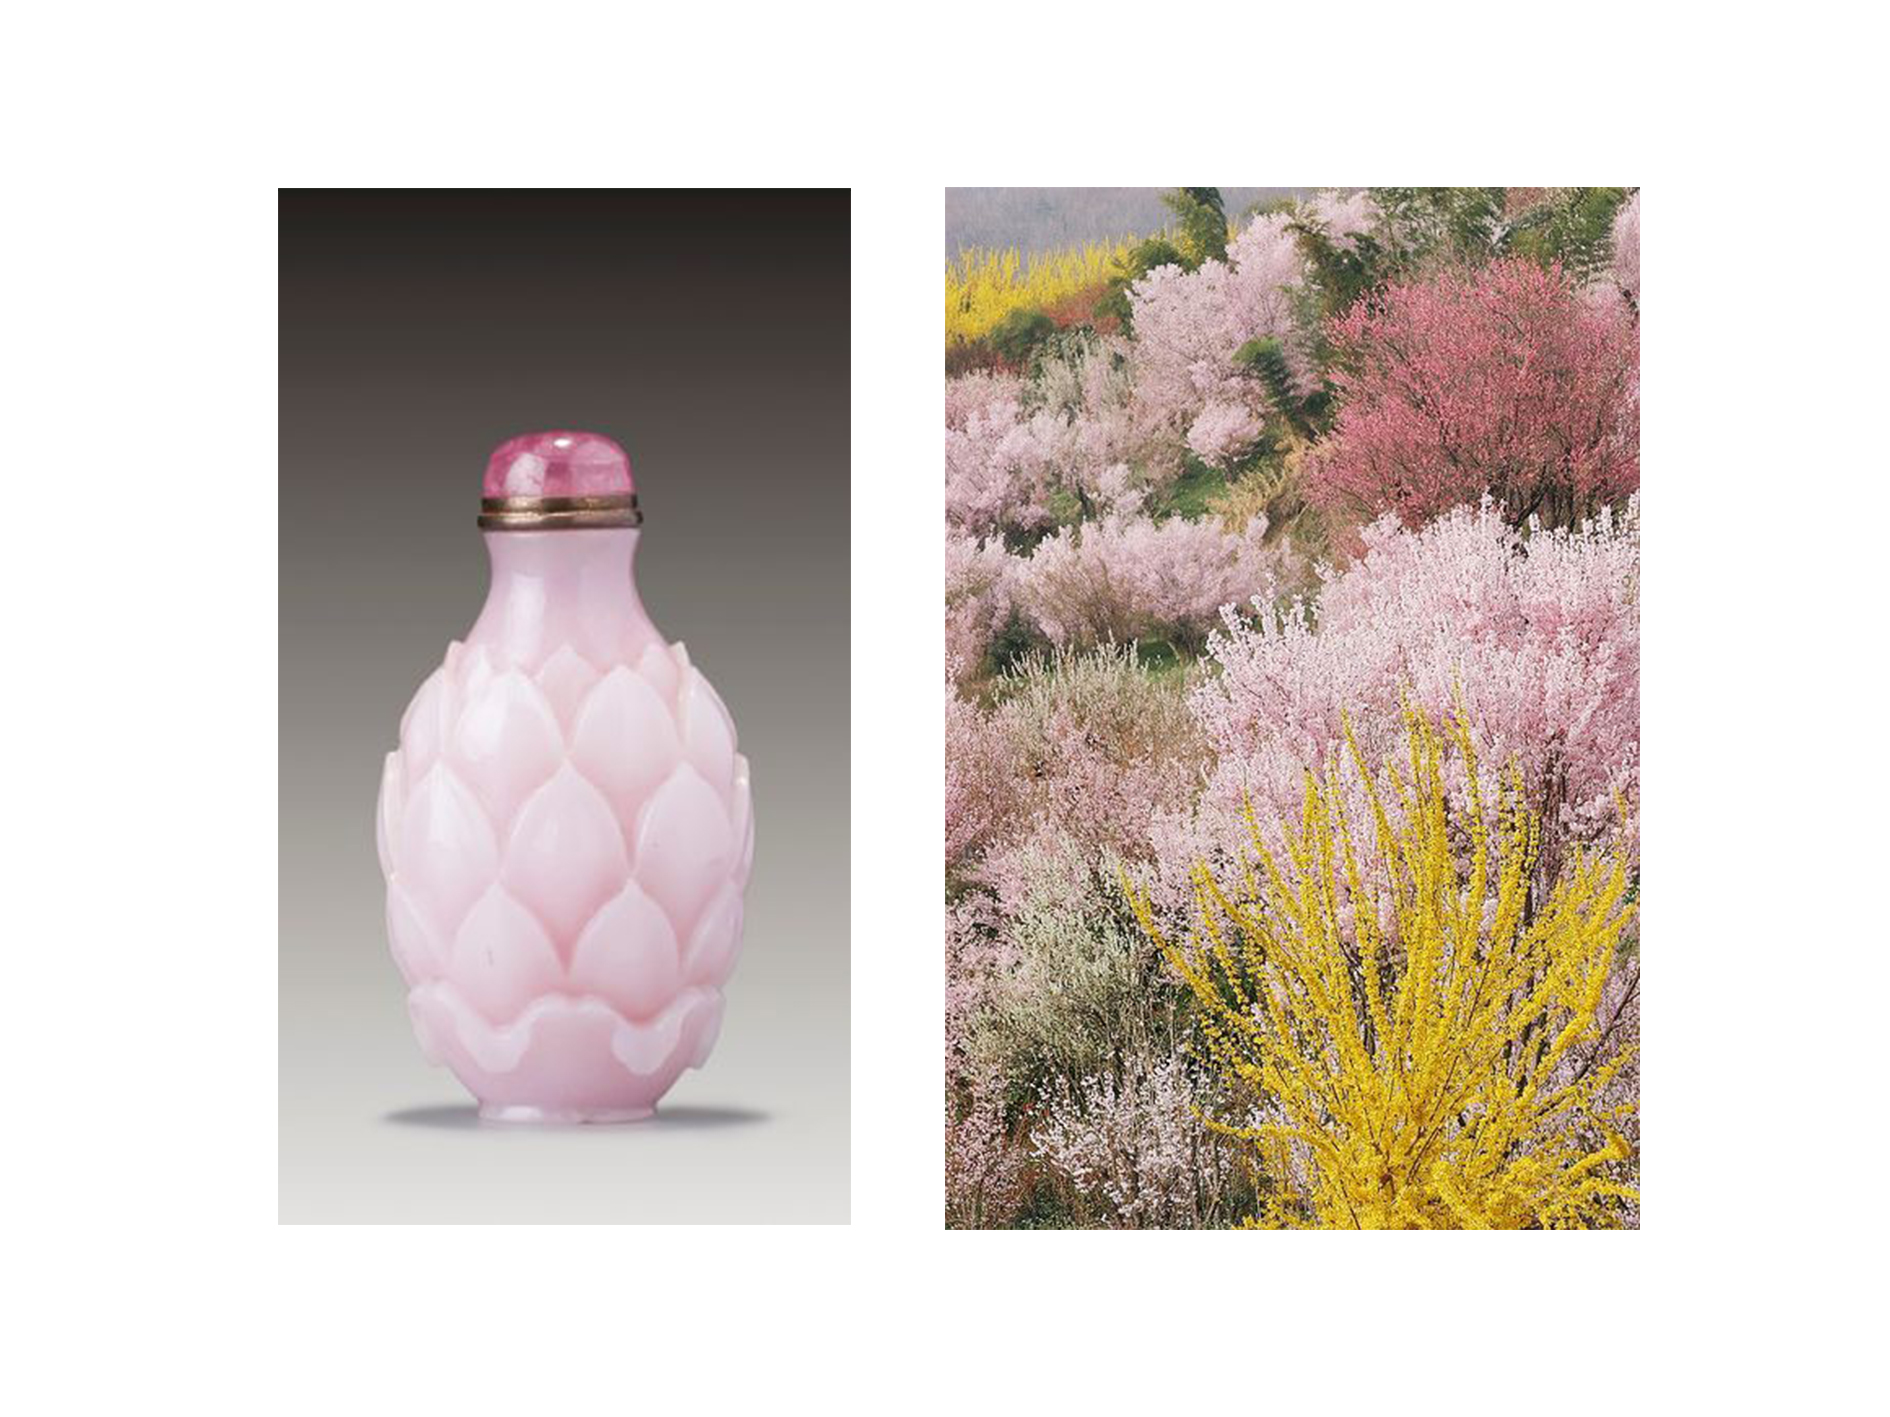 Extrait de parfums historically were sold in small, ornamental vials. Images via Sotheby's and The Coveteur